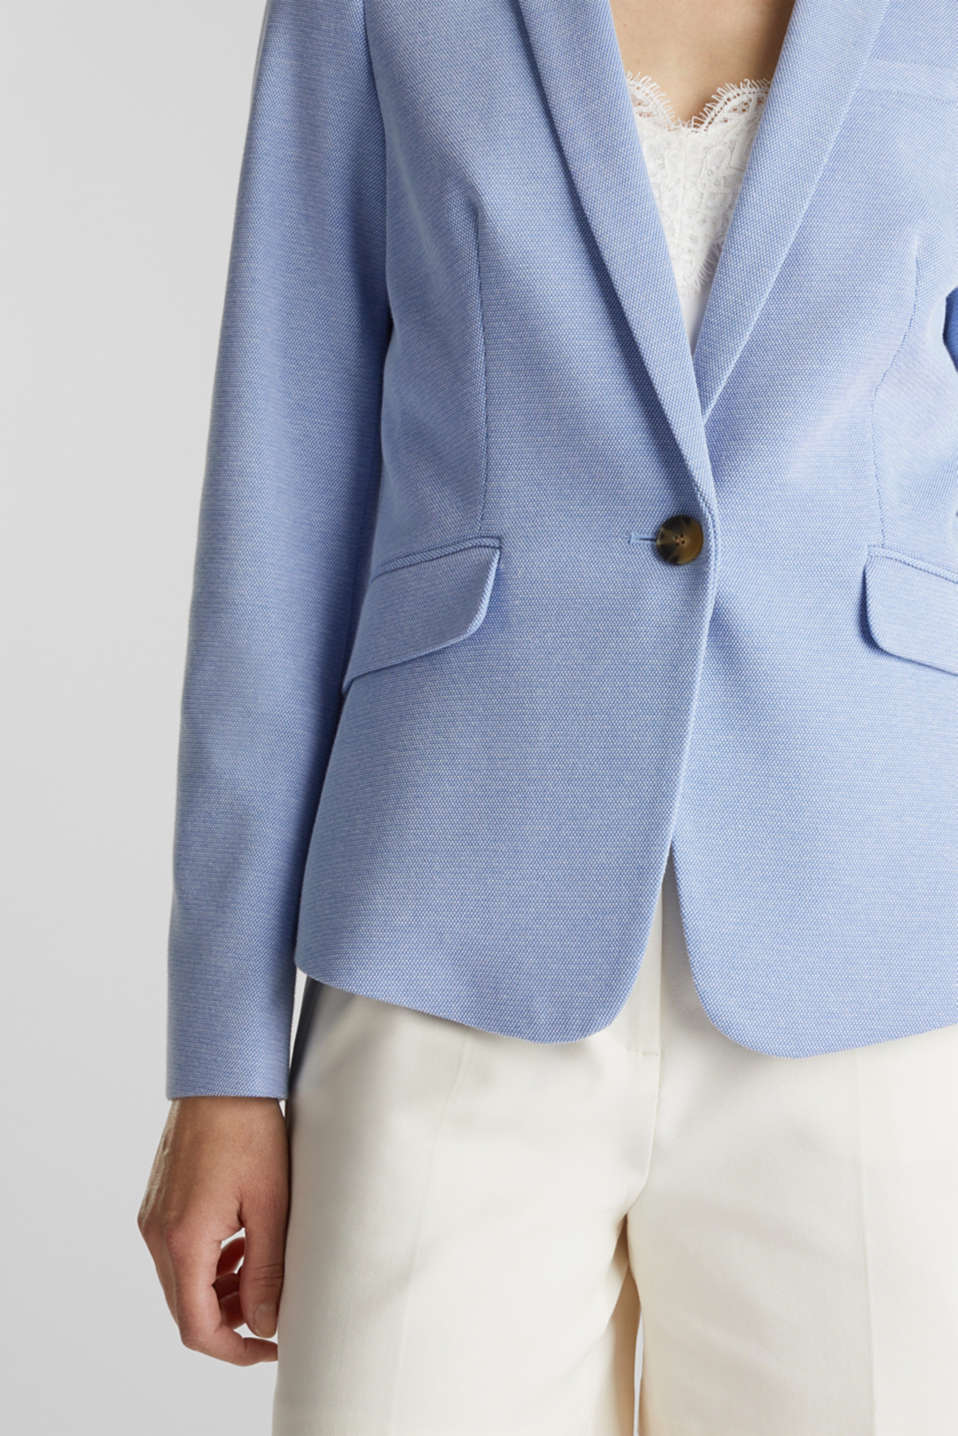 Fitted textured blazer, recycled, LIGHT BLUE, detail image number 2